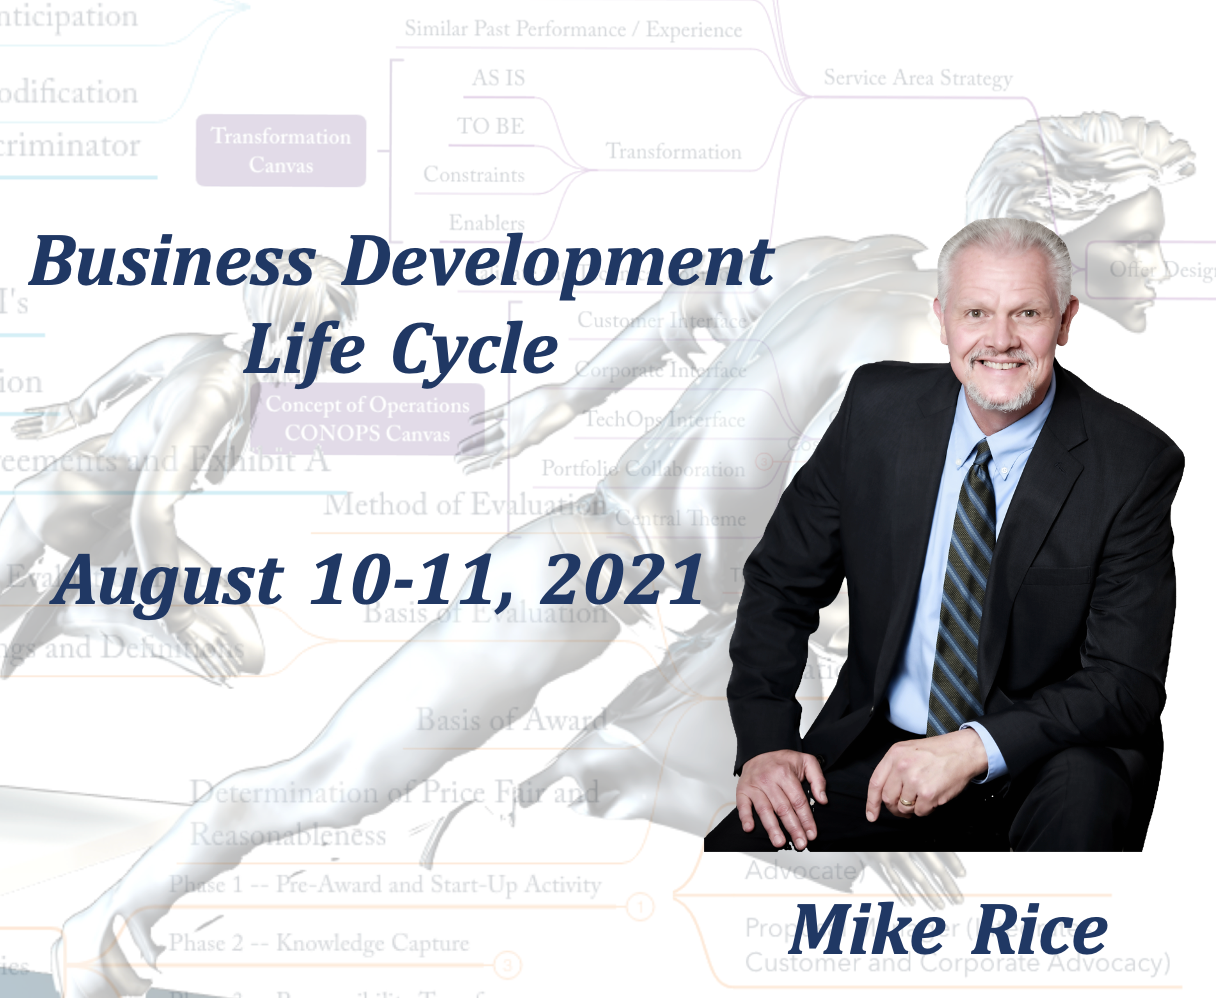 Business Development Life Cycle